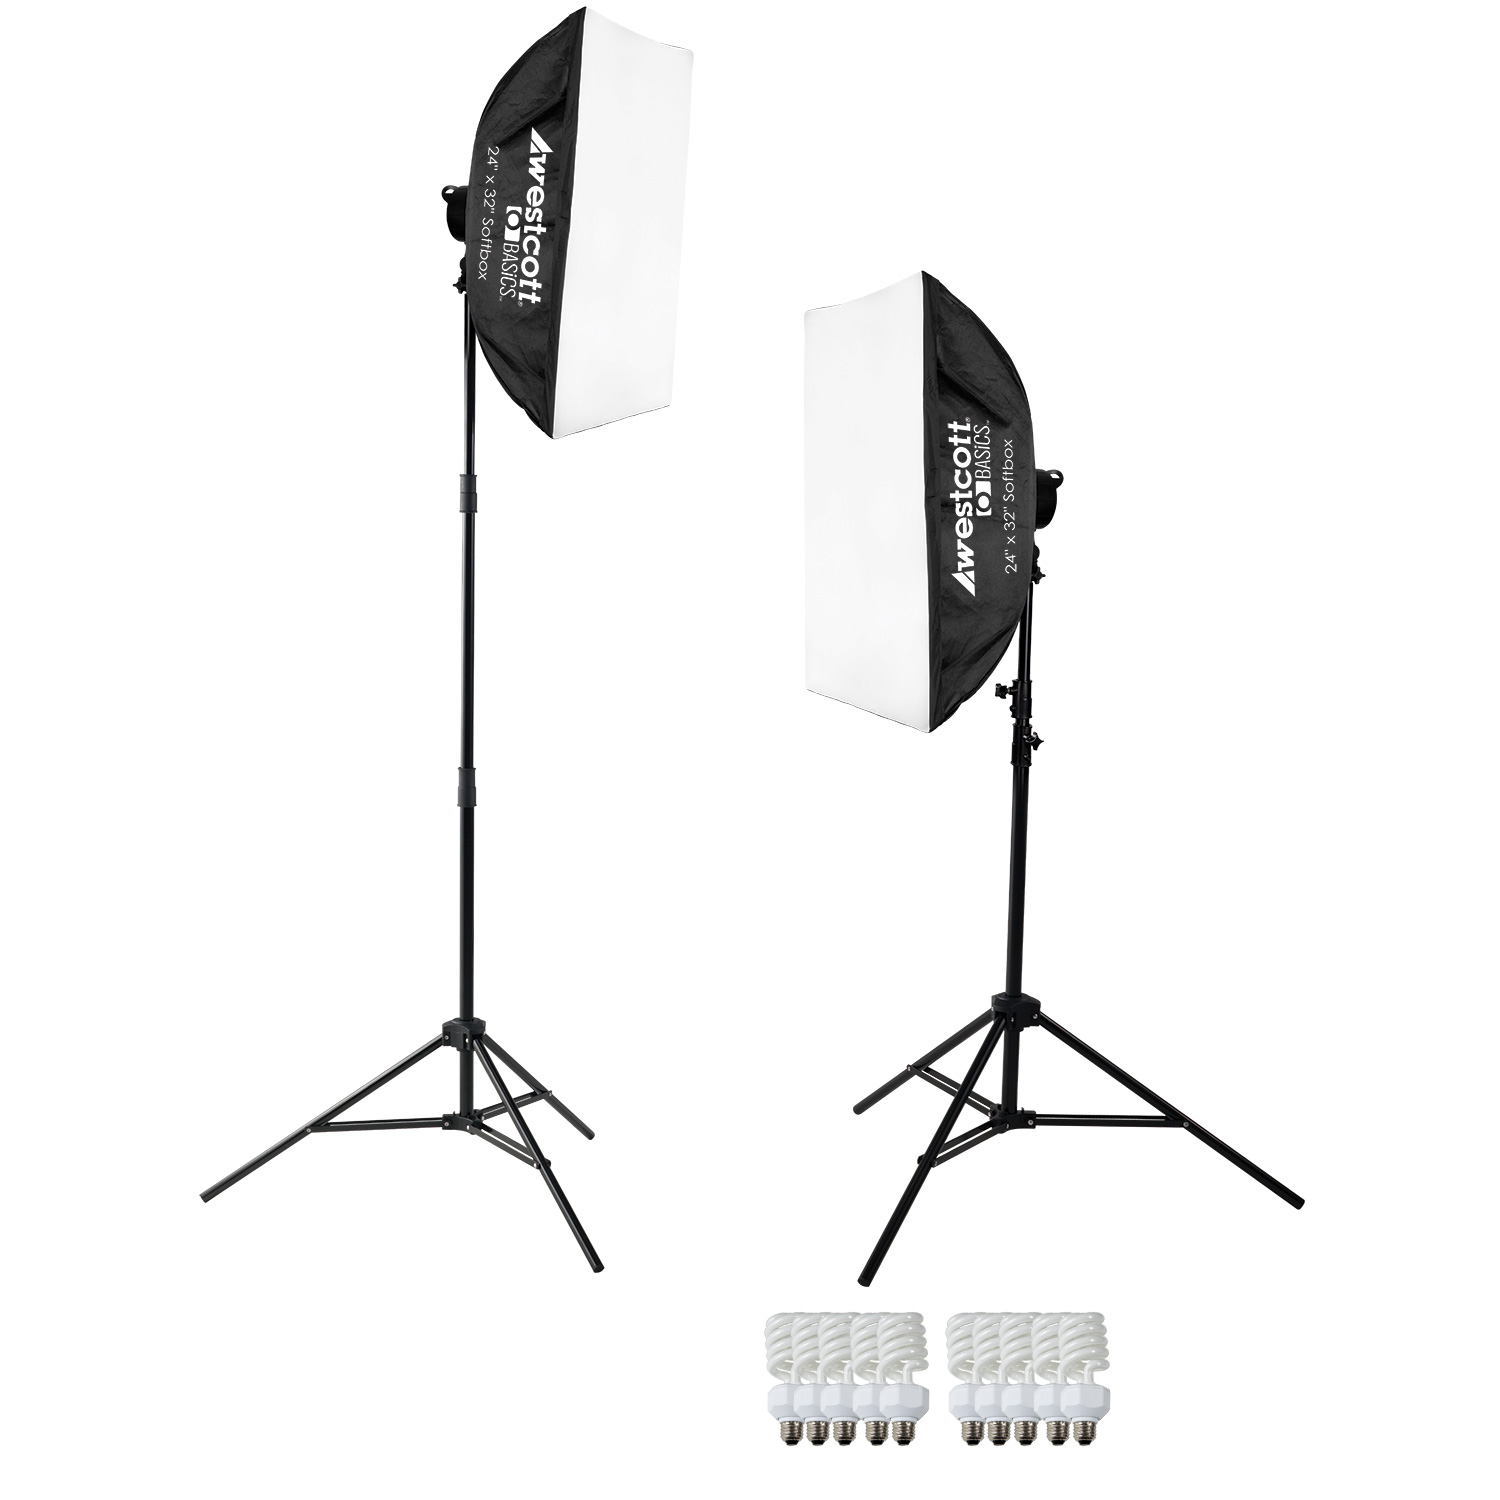 D5 Daylight 2-Light Softbox Kit